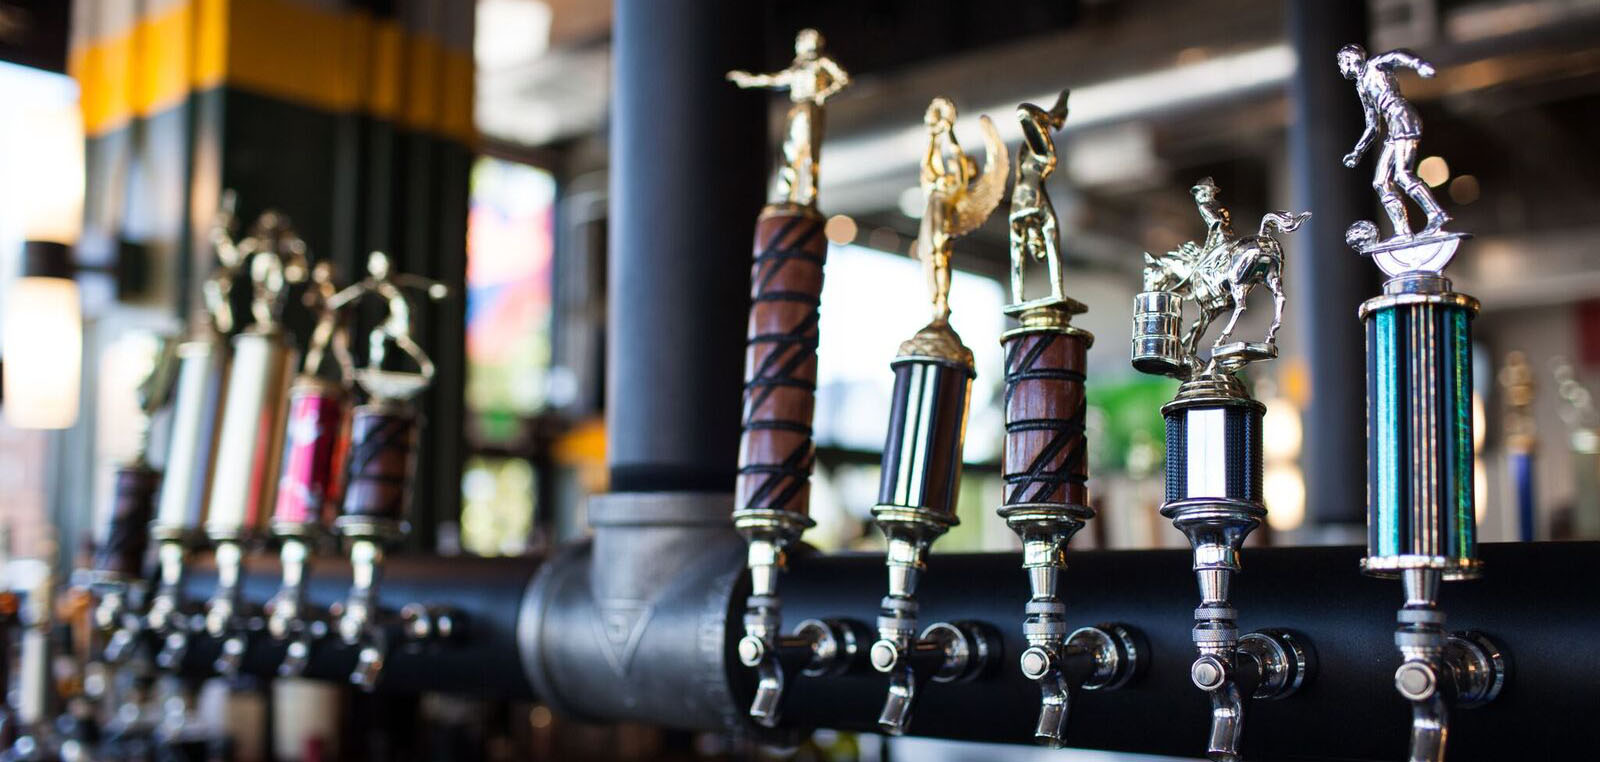 Taps in the center of the bar at Elgin Park in downtown Tulsa, Oklahoma.